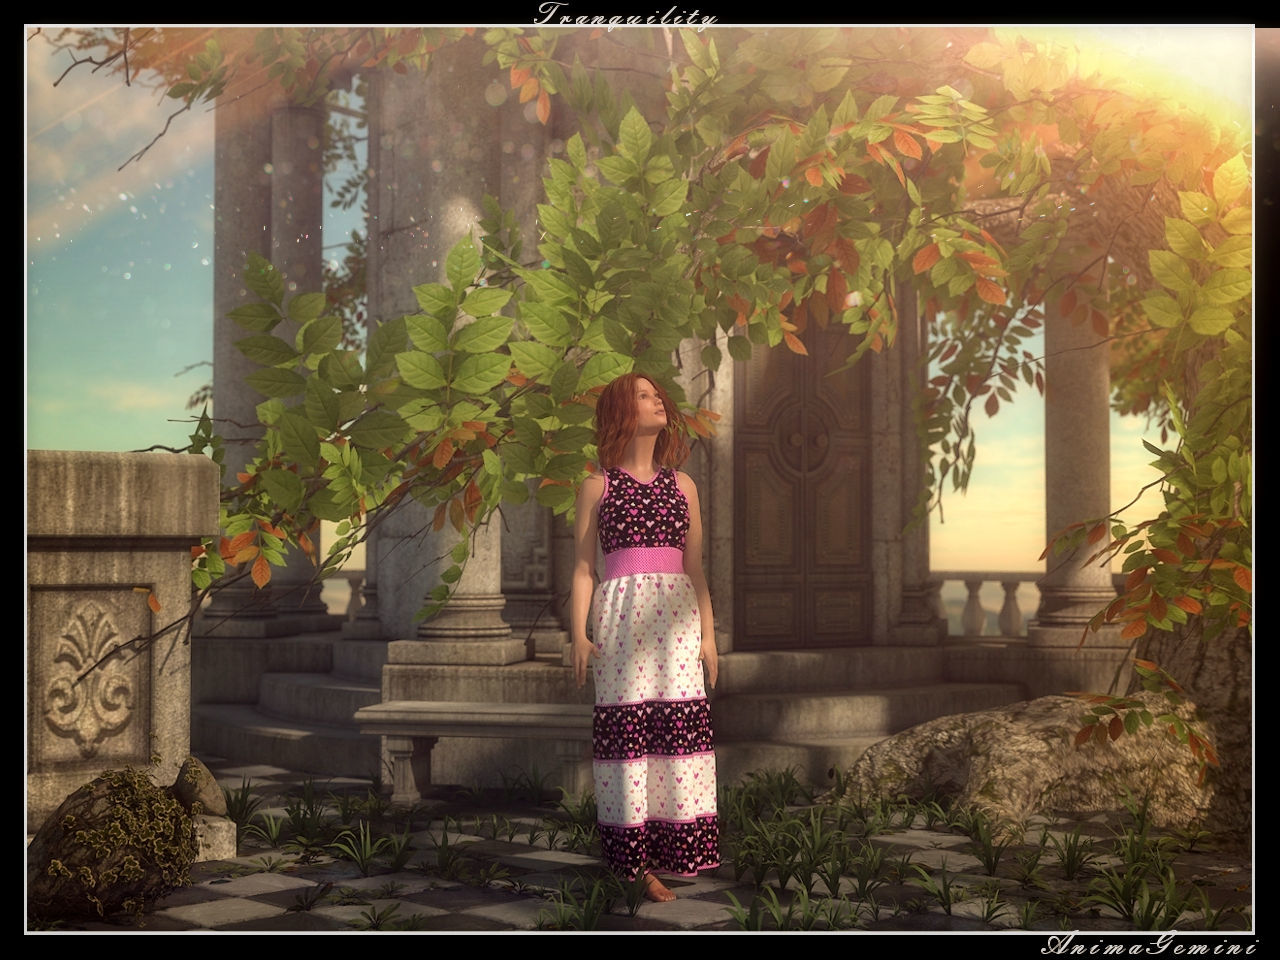 Tranquility by Ladonna